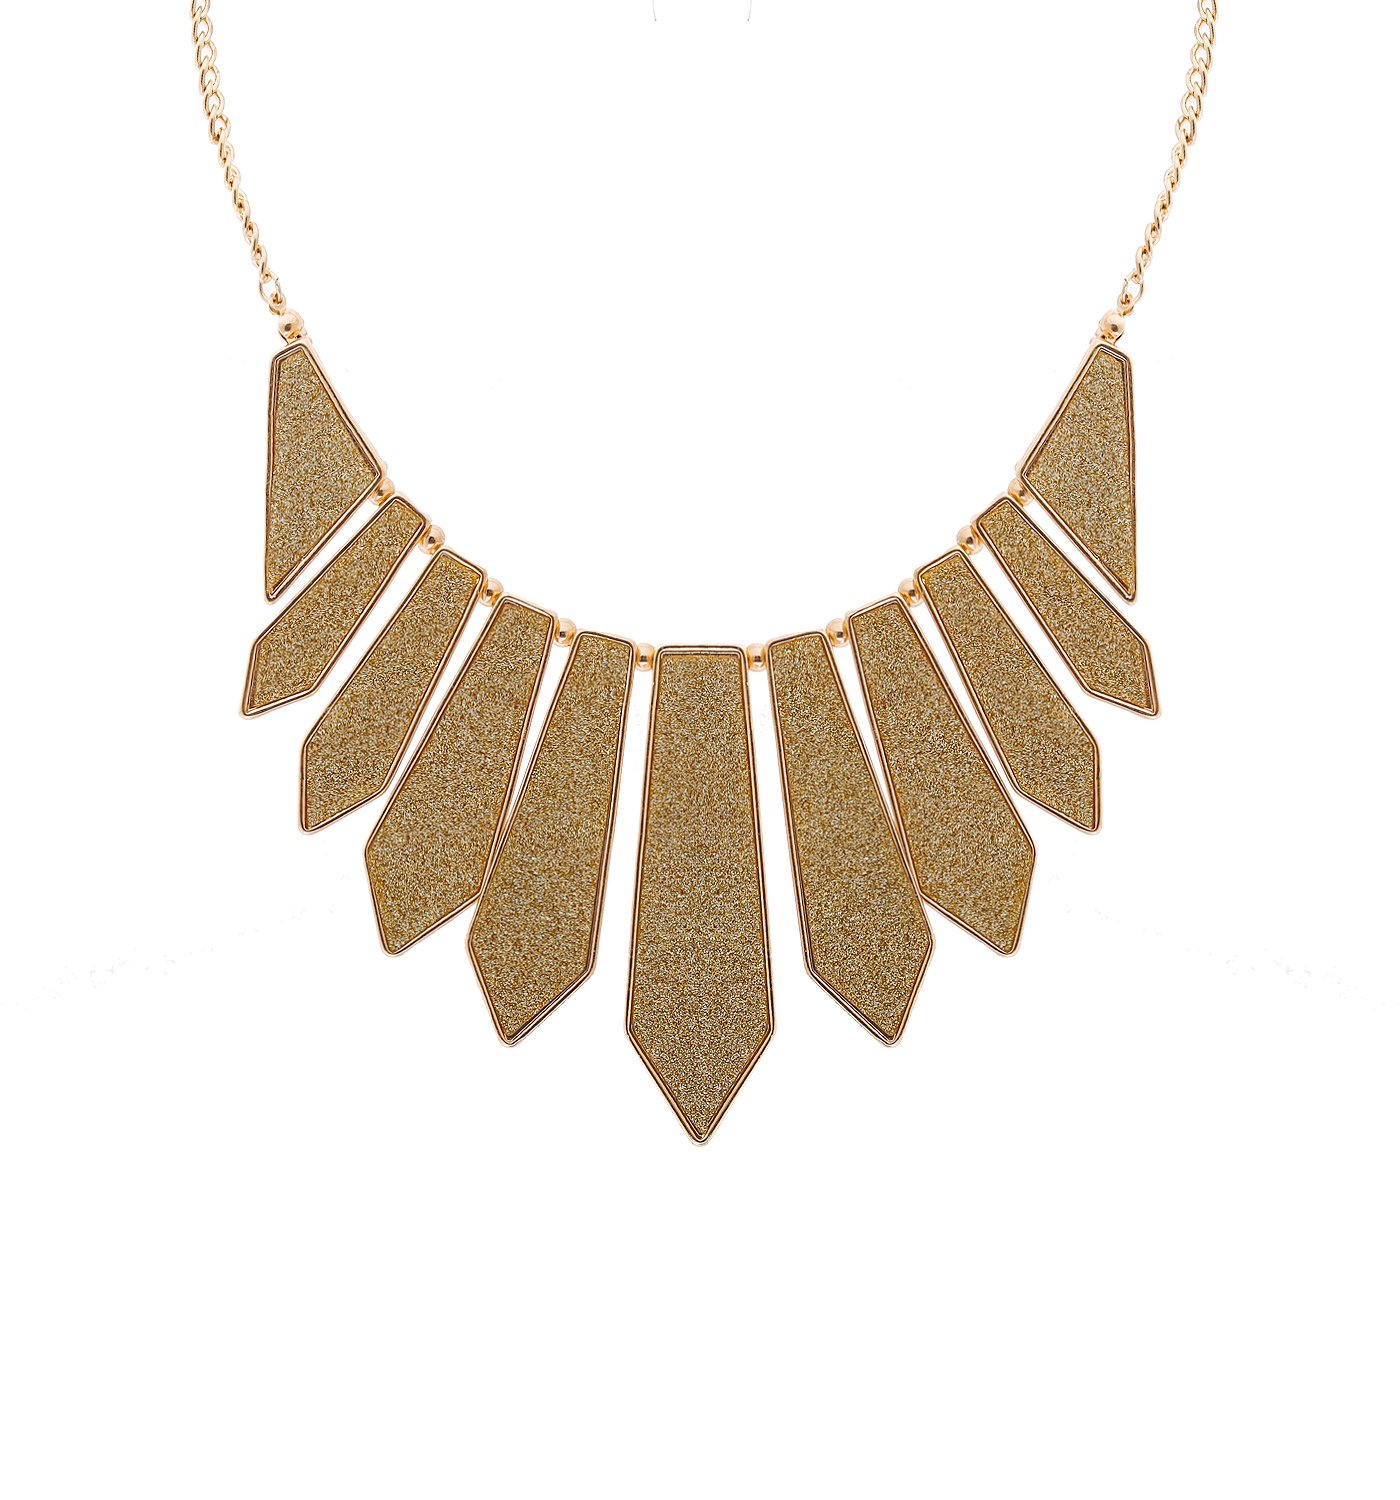 HSWE Spangle Collar Necklace for Women Short Chunky Bib Necklace (Gold)